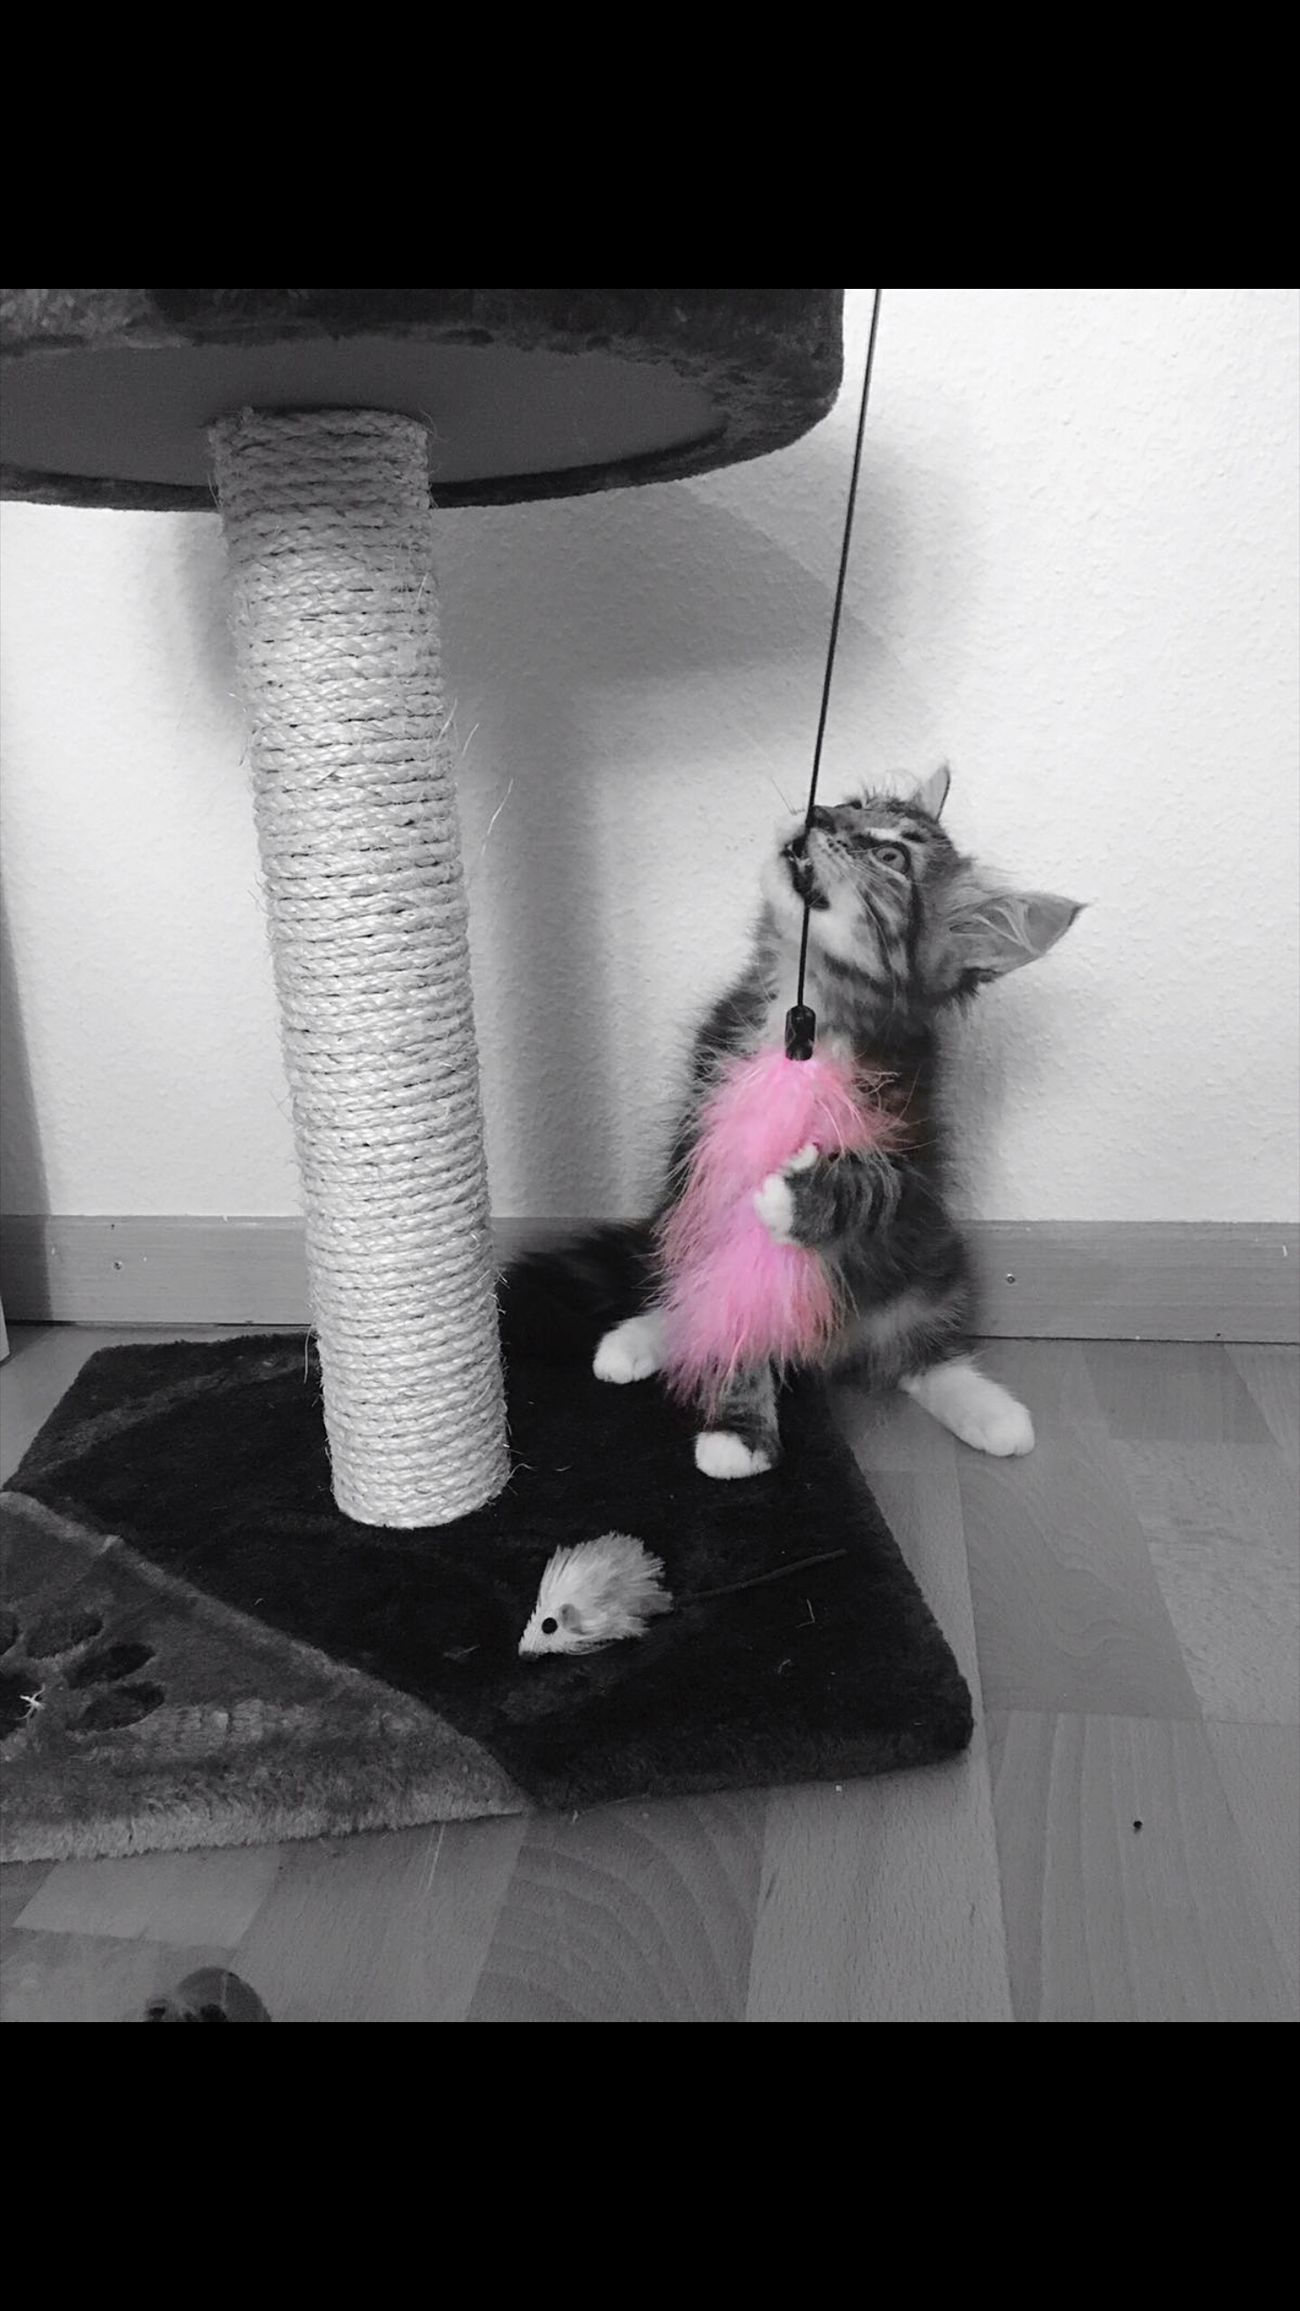 Indoors  No People Cat Cat Lovers Babycat Babyanimals Animal Themes Playing Beautifulanimal Blackandwhite Pink Cat Photography Sweetie Sweetness Sweet Home Sweetcat Pink Color